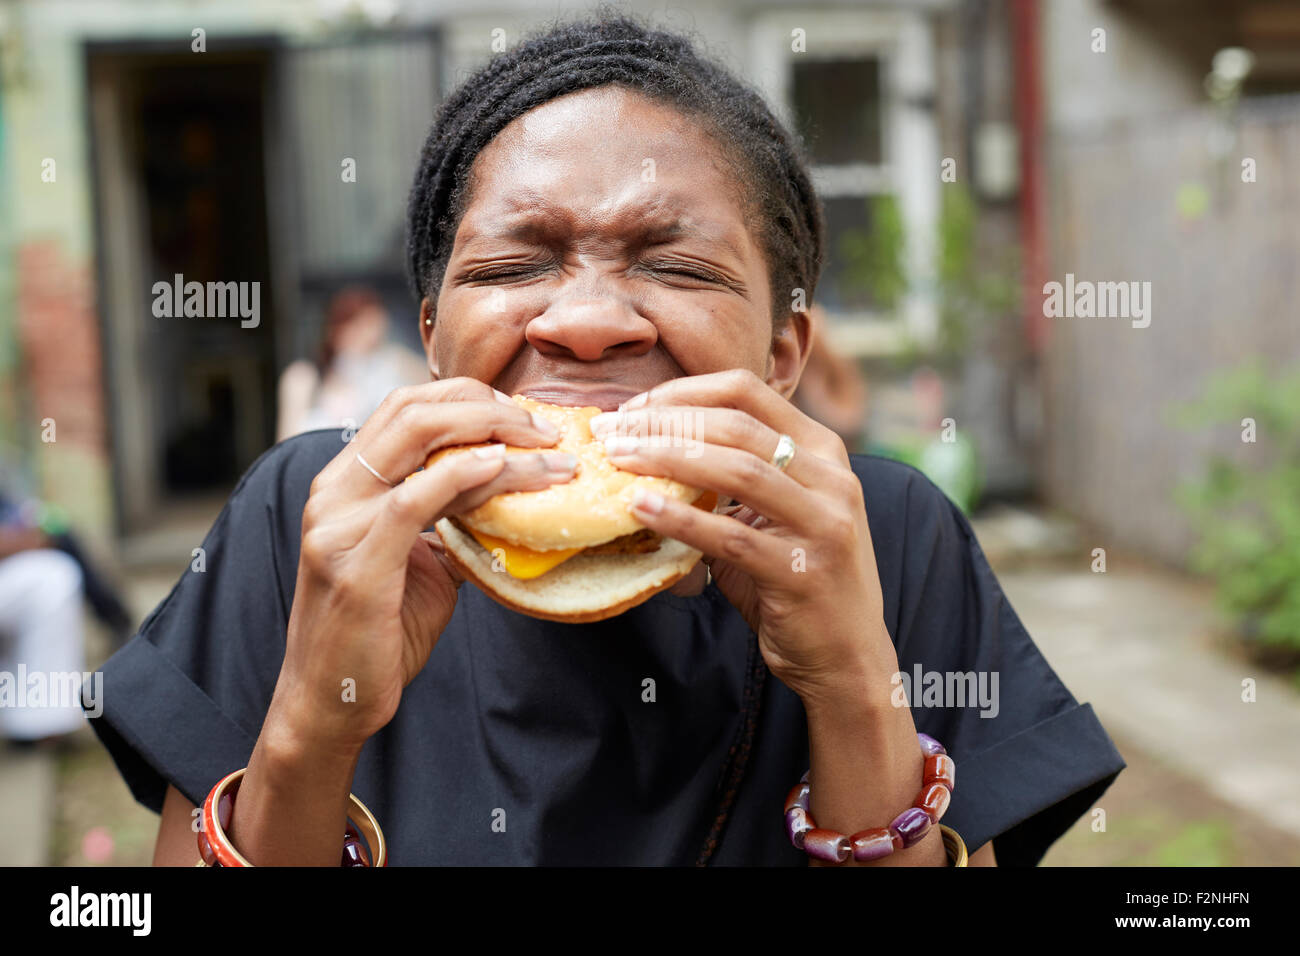 African American Woman eating at backyard barbecue Banque D'Images